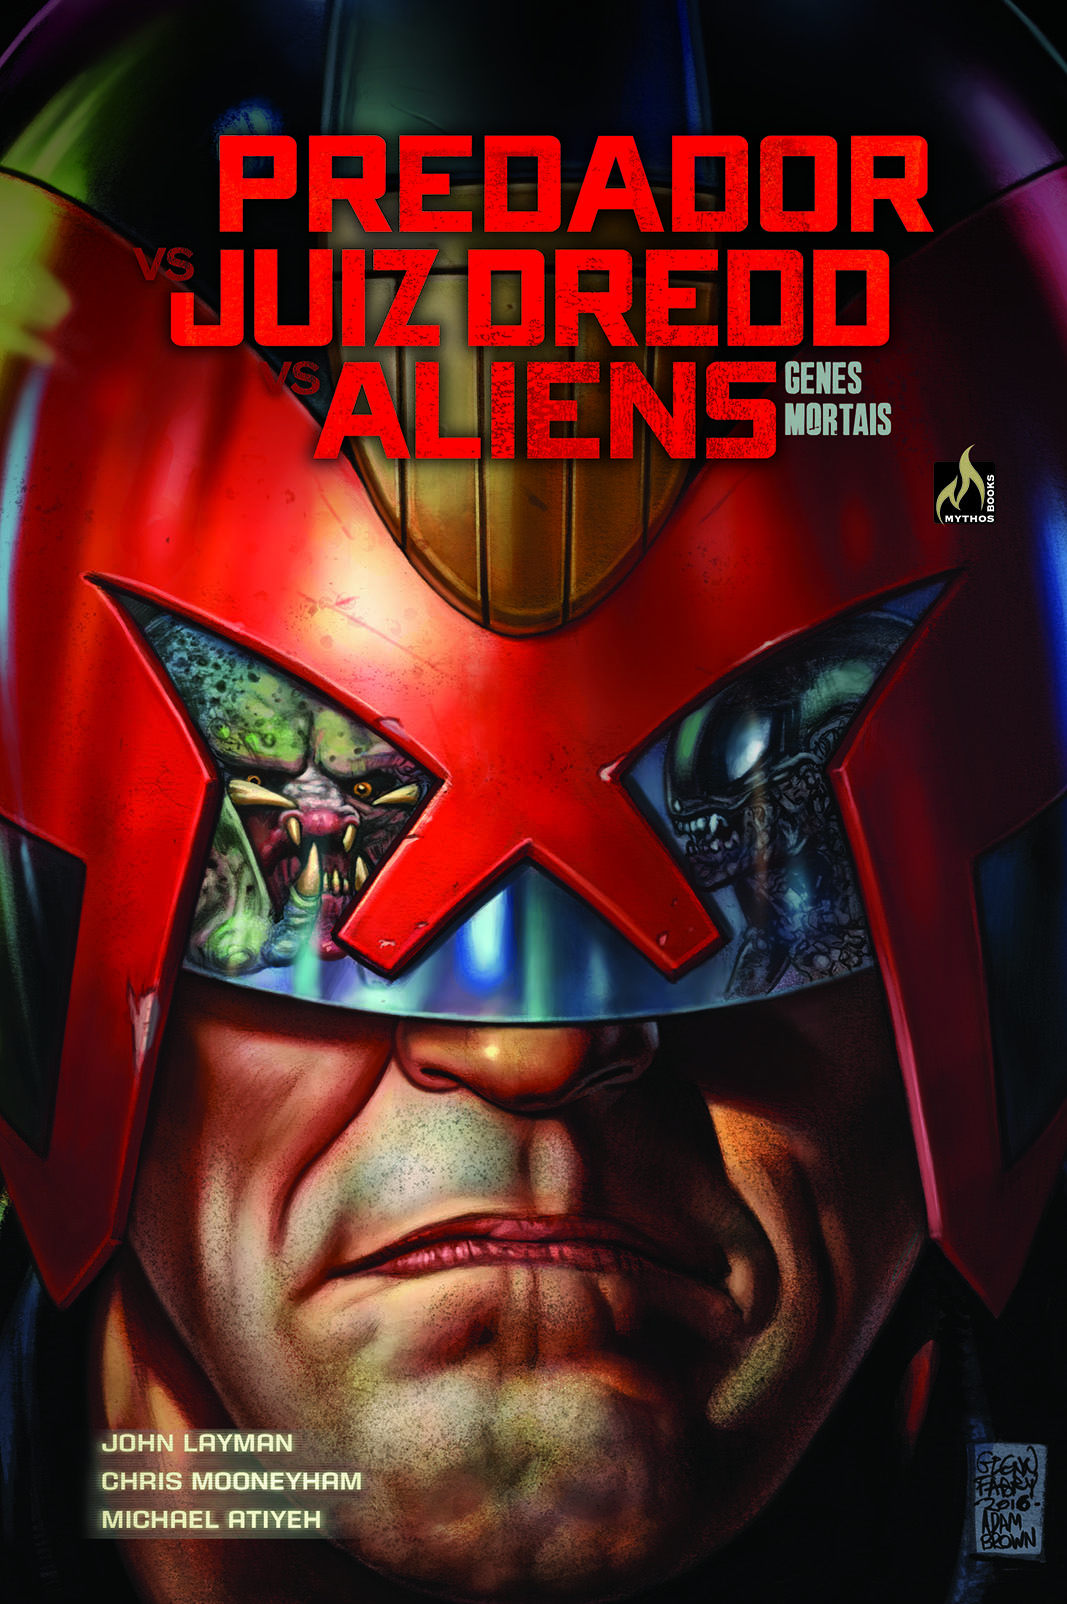 PREDADOR VS. JUIZ DREDD VS. ALIENS - GENES MORTAIS